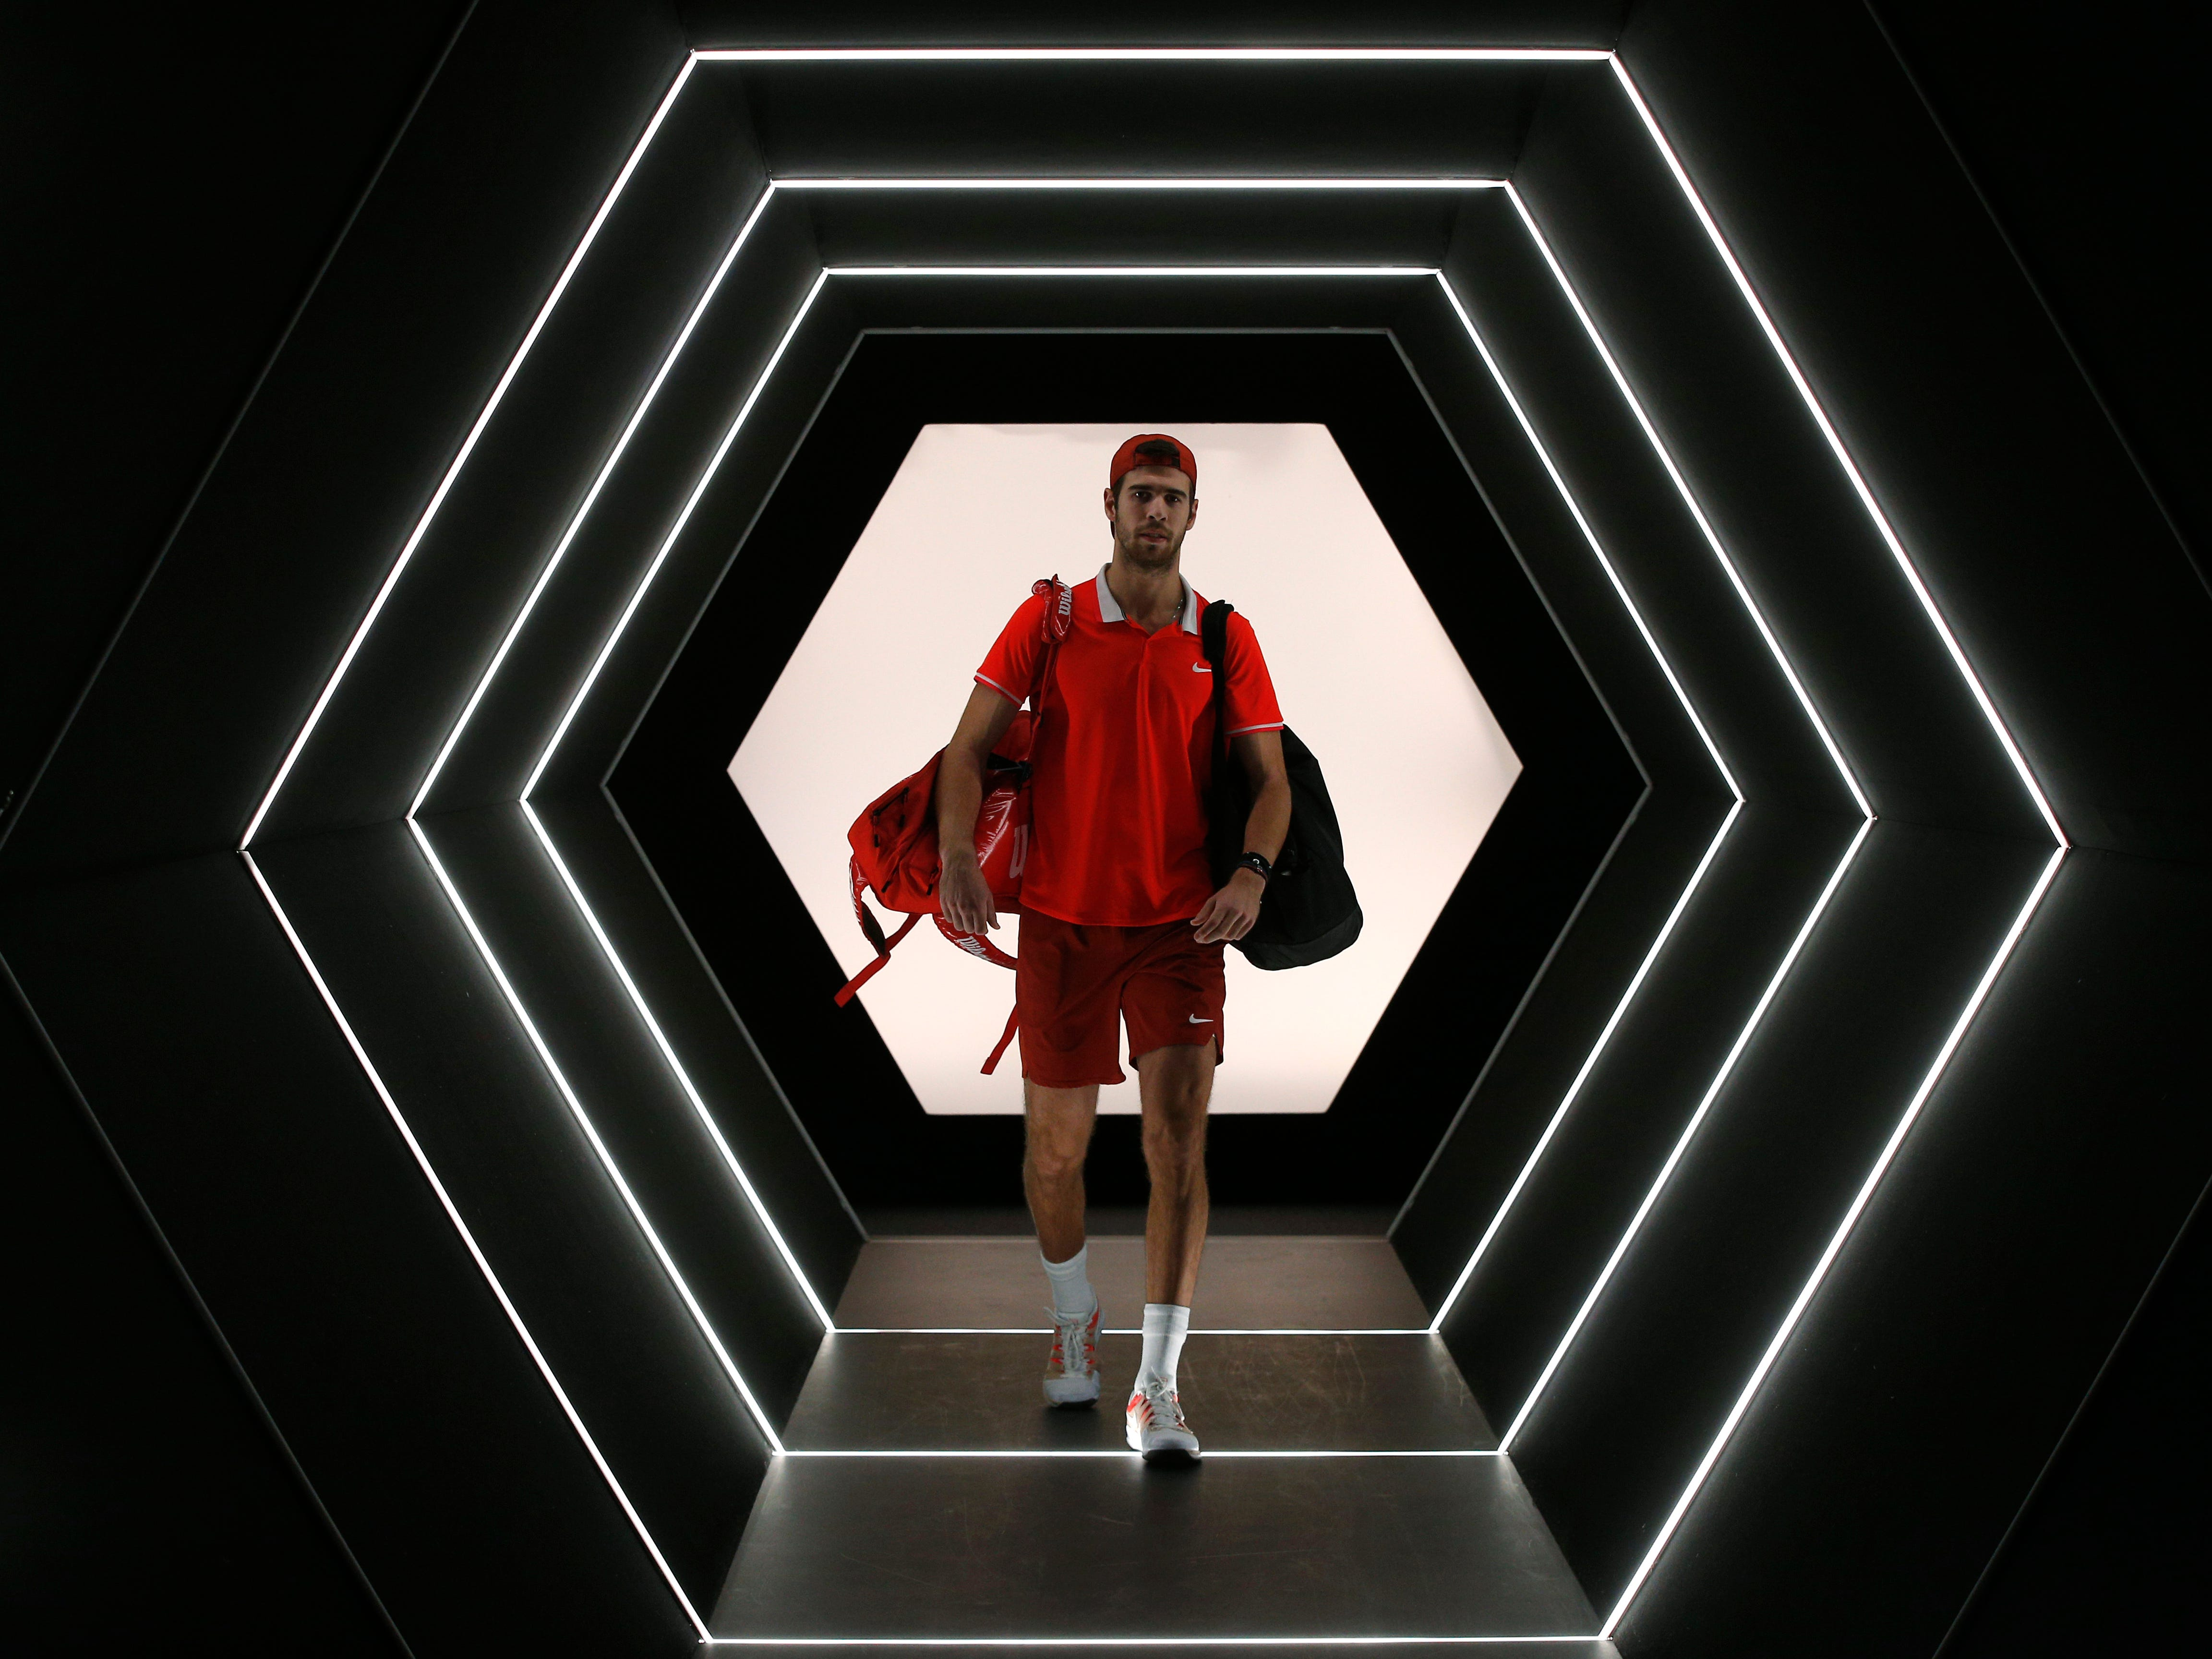 Karen Khachanov of Russia arrives for the final match of the Paris Masters tennis tournament against Novak Djokovic of Serbia at the Bercy Arena in Paris, France, Sunday, Nov. 4, 2018.